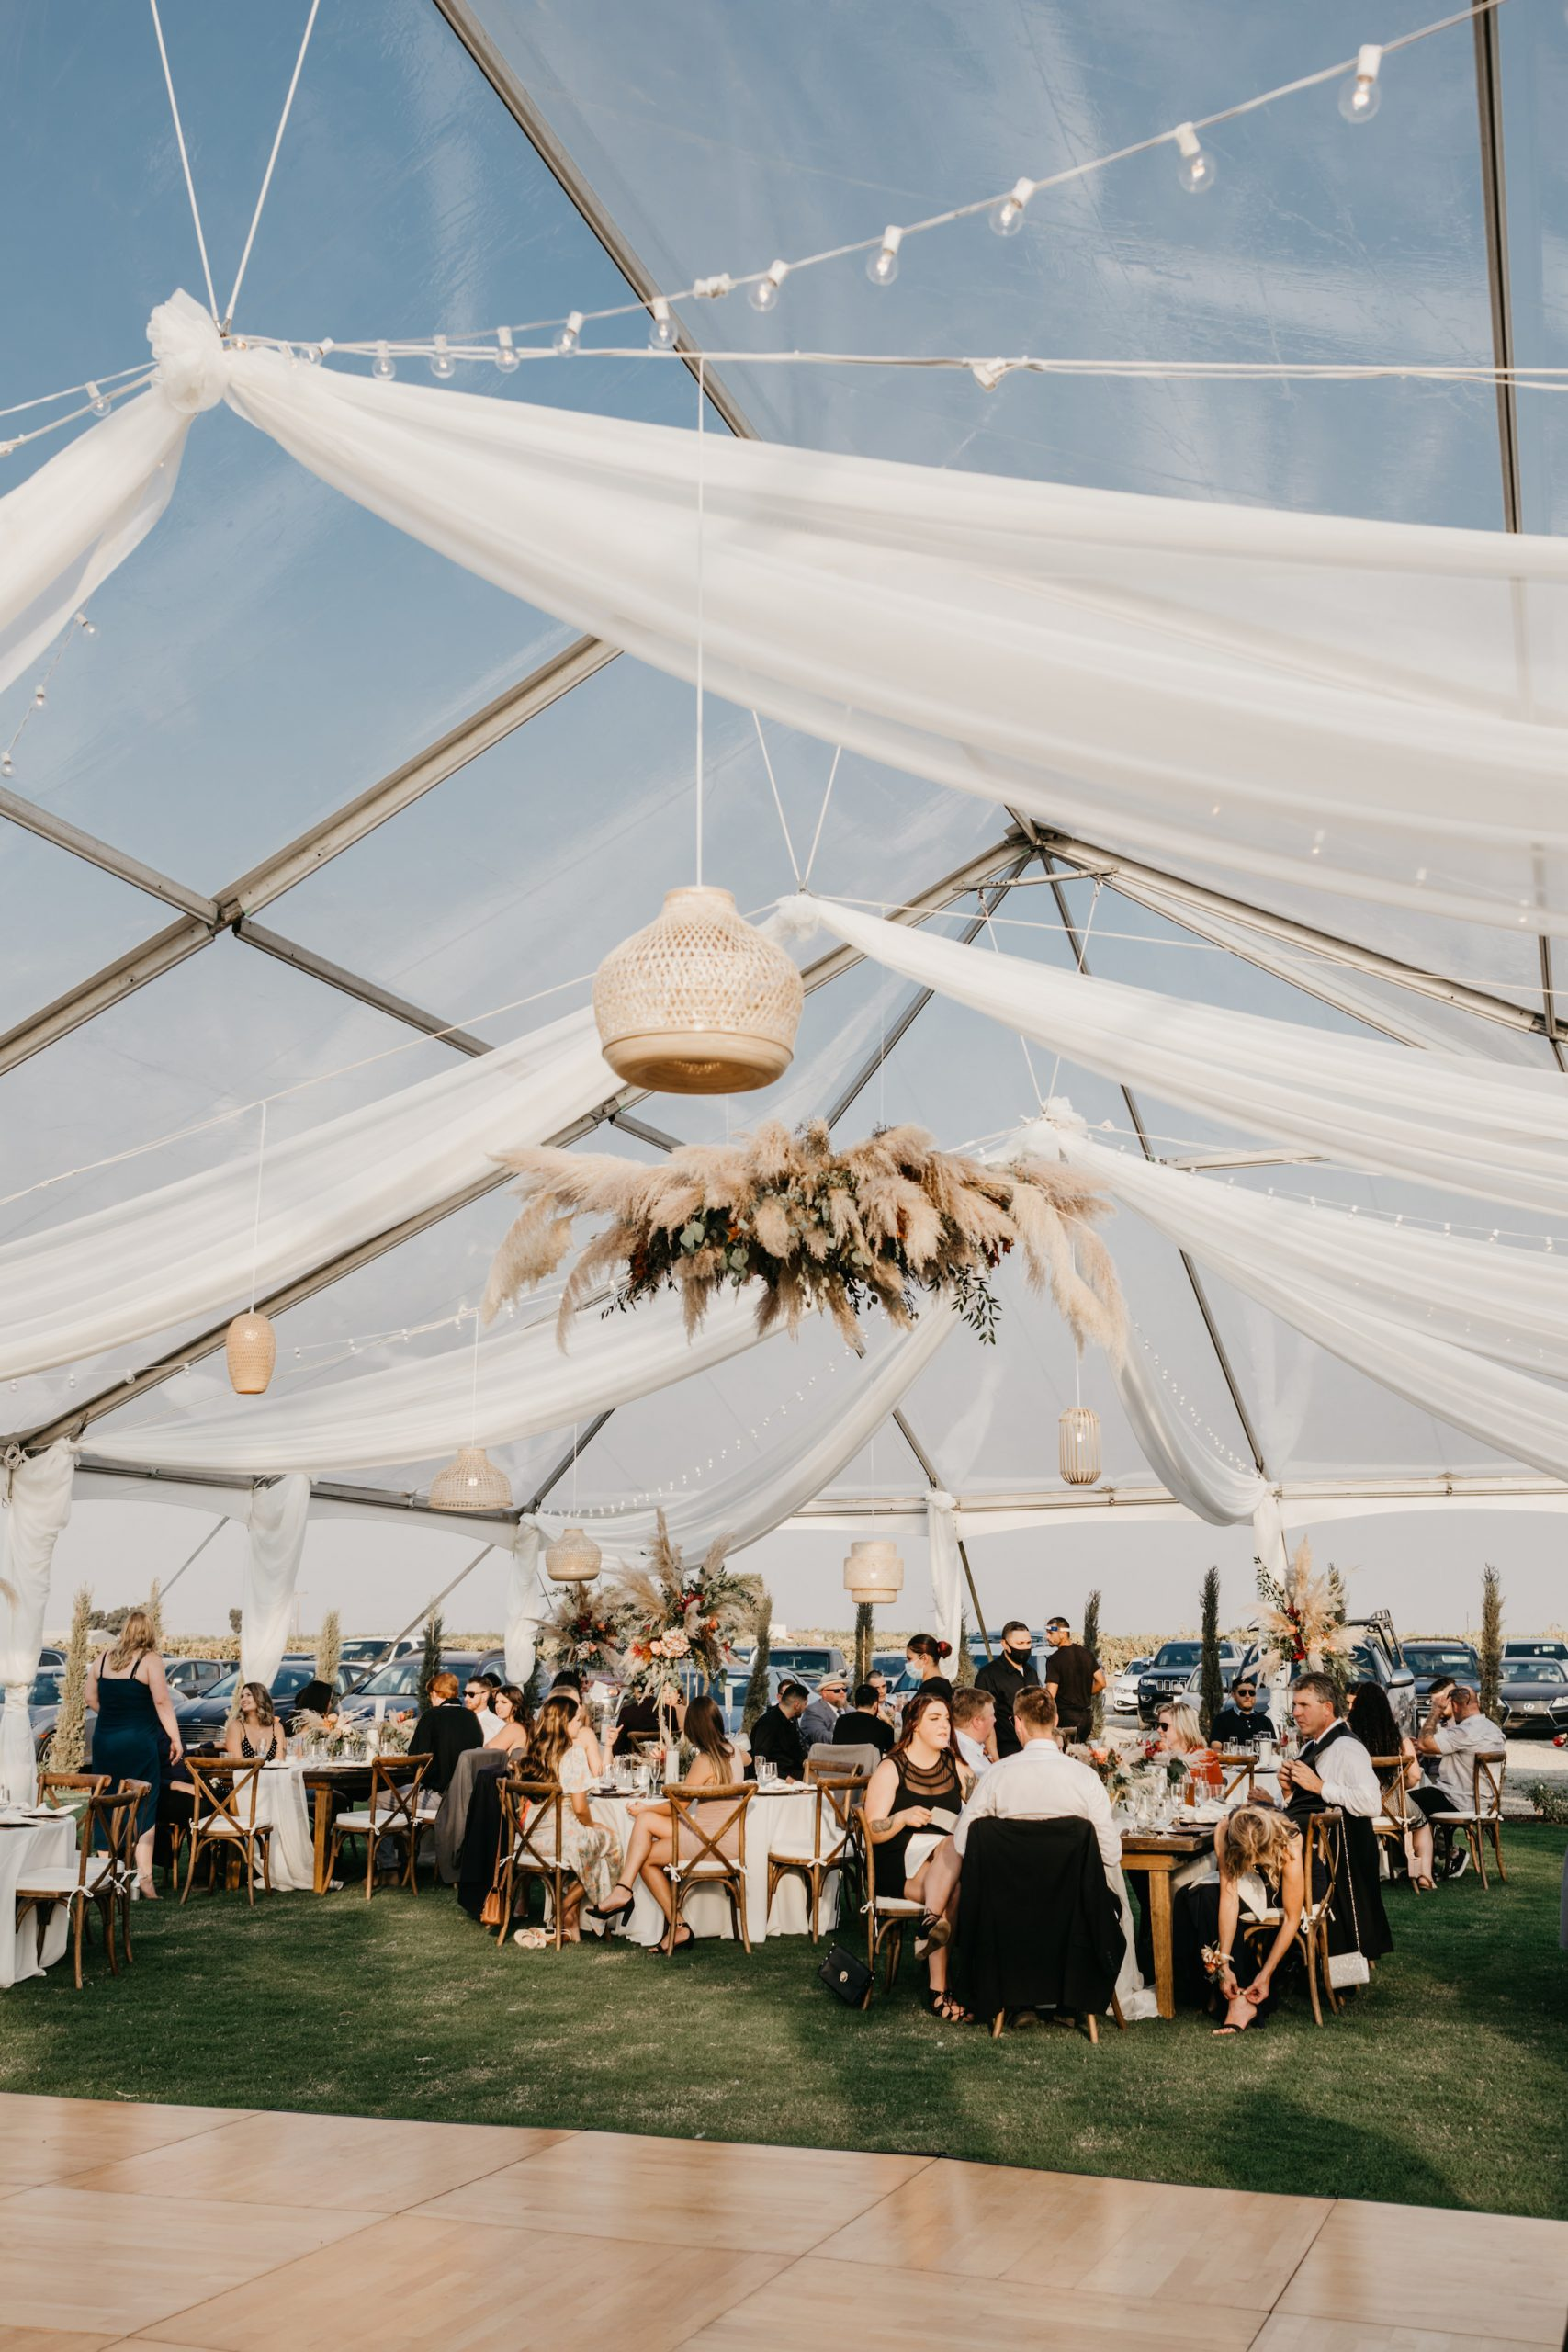 Evanelle Vineyards Wedding Reception with transparent clear tent, image by Fatima Elreda Photo